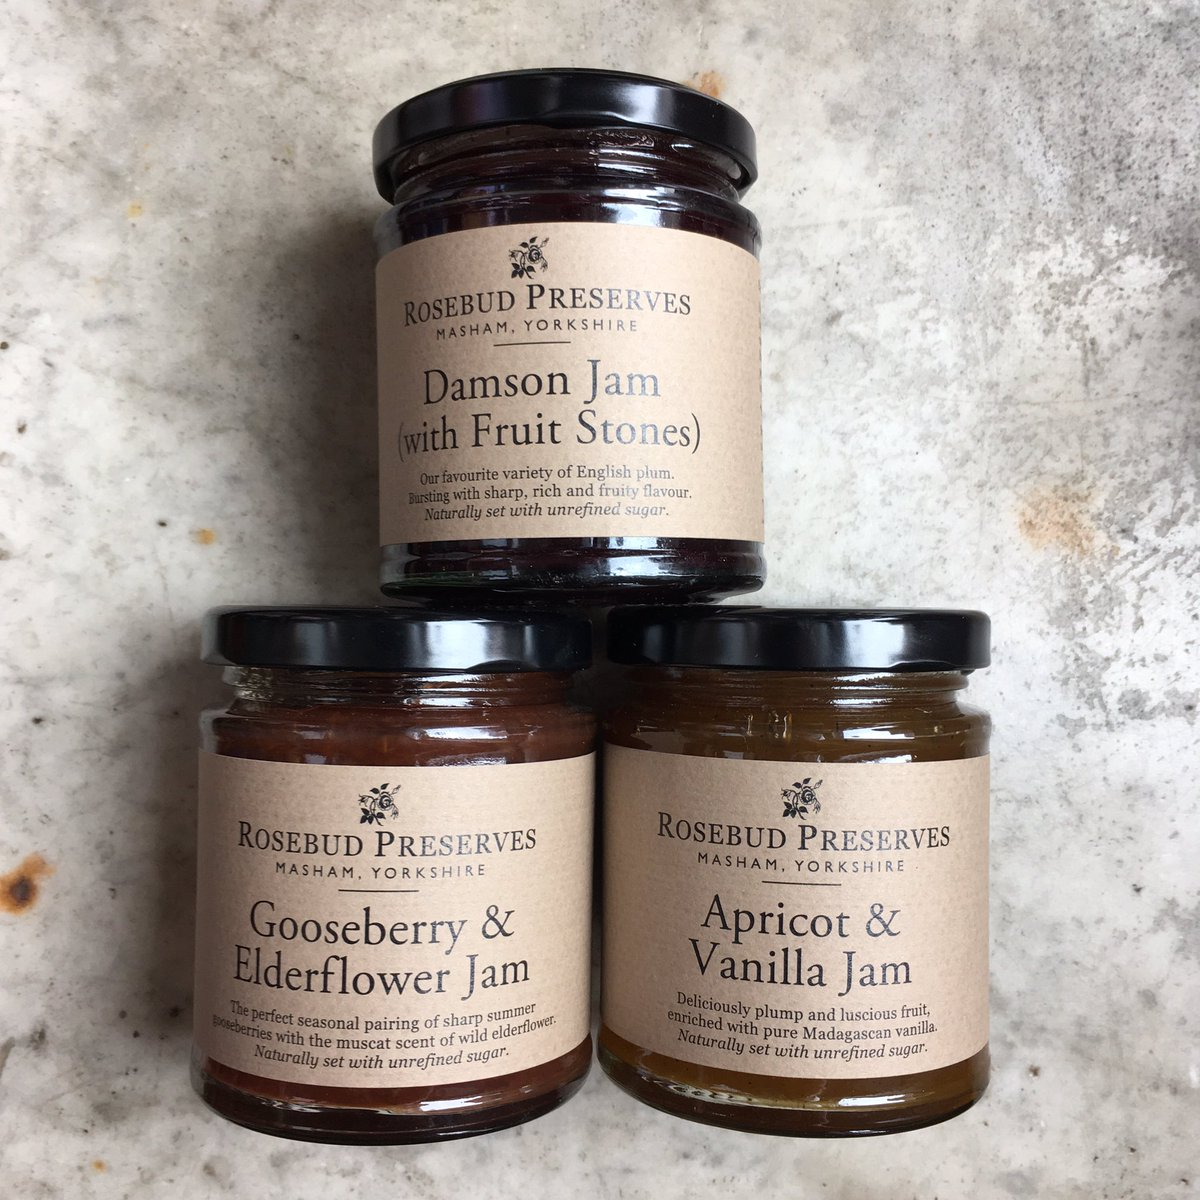 Gorgeous restocking of our jams by @preserves  #Damson #Goosberry & #Elderflower #Apricot & #Vanilla Delicious with toast, cheese and cooking & baking.  #jam #condiment #allday #cooking #baking #breakfast #lunch #sweet #toast #supportsmallbusiness #deli #Deptford #London